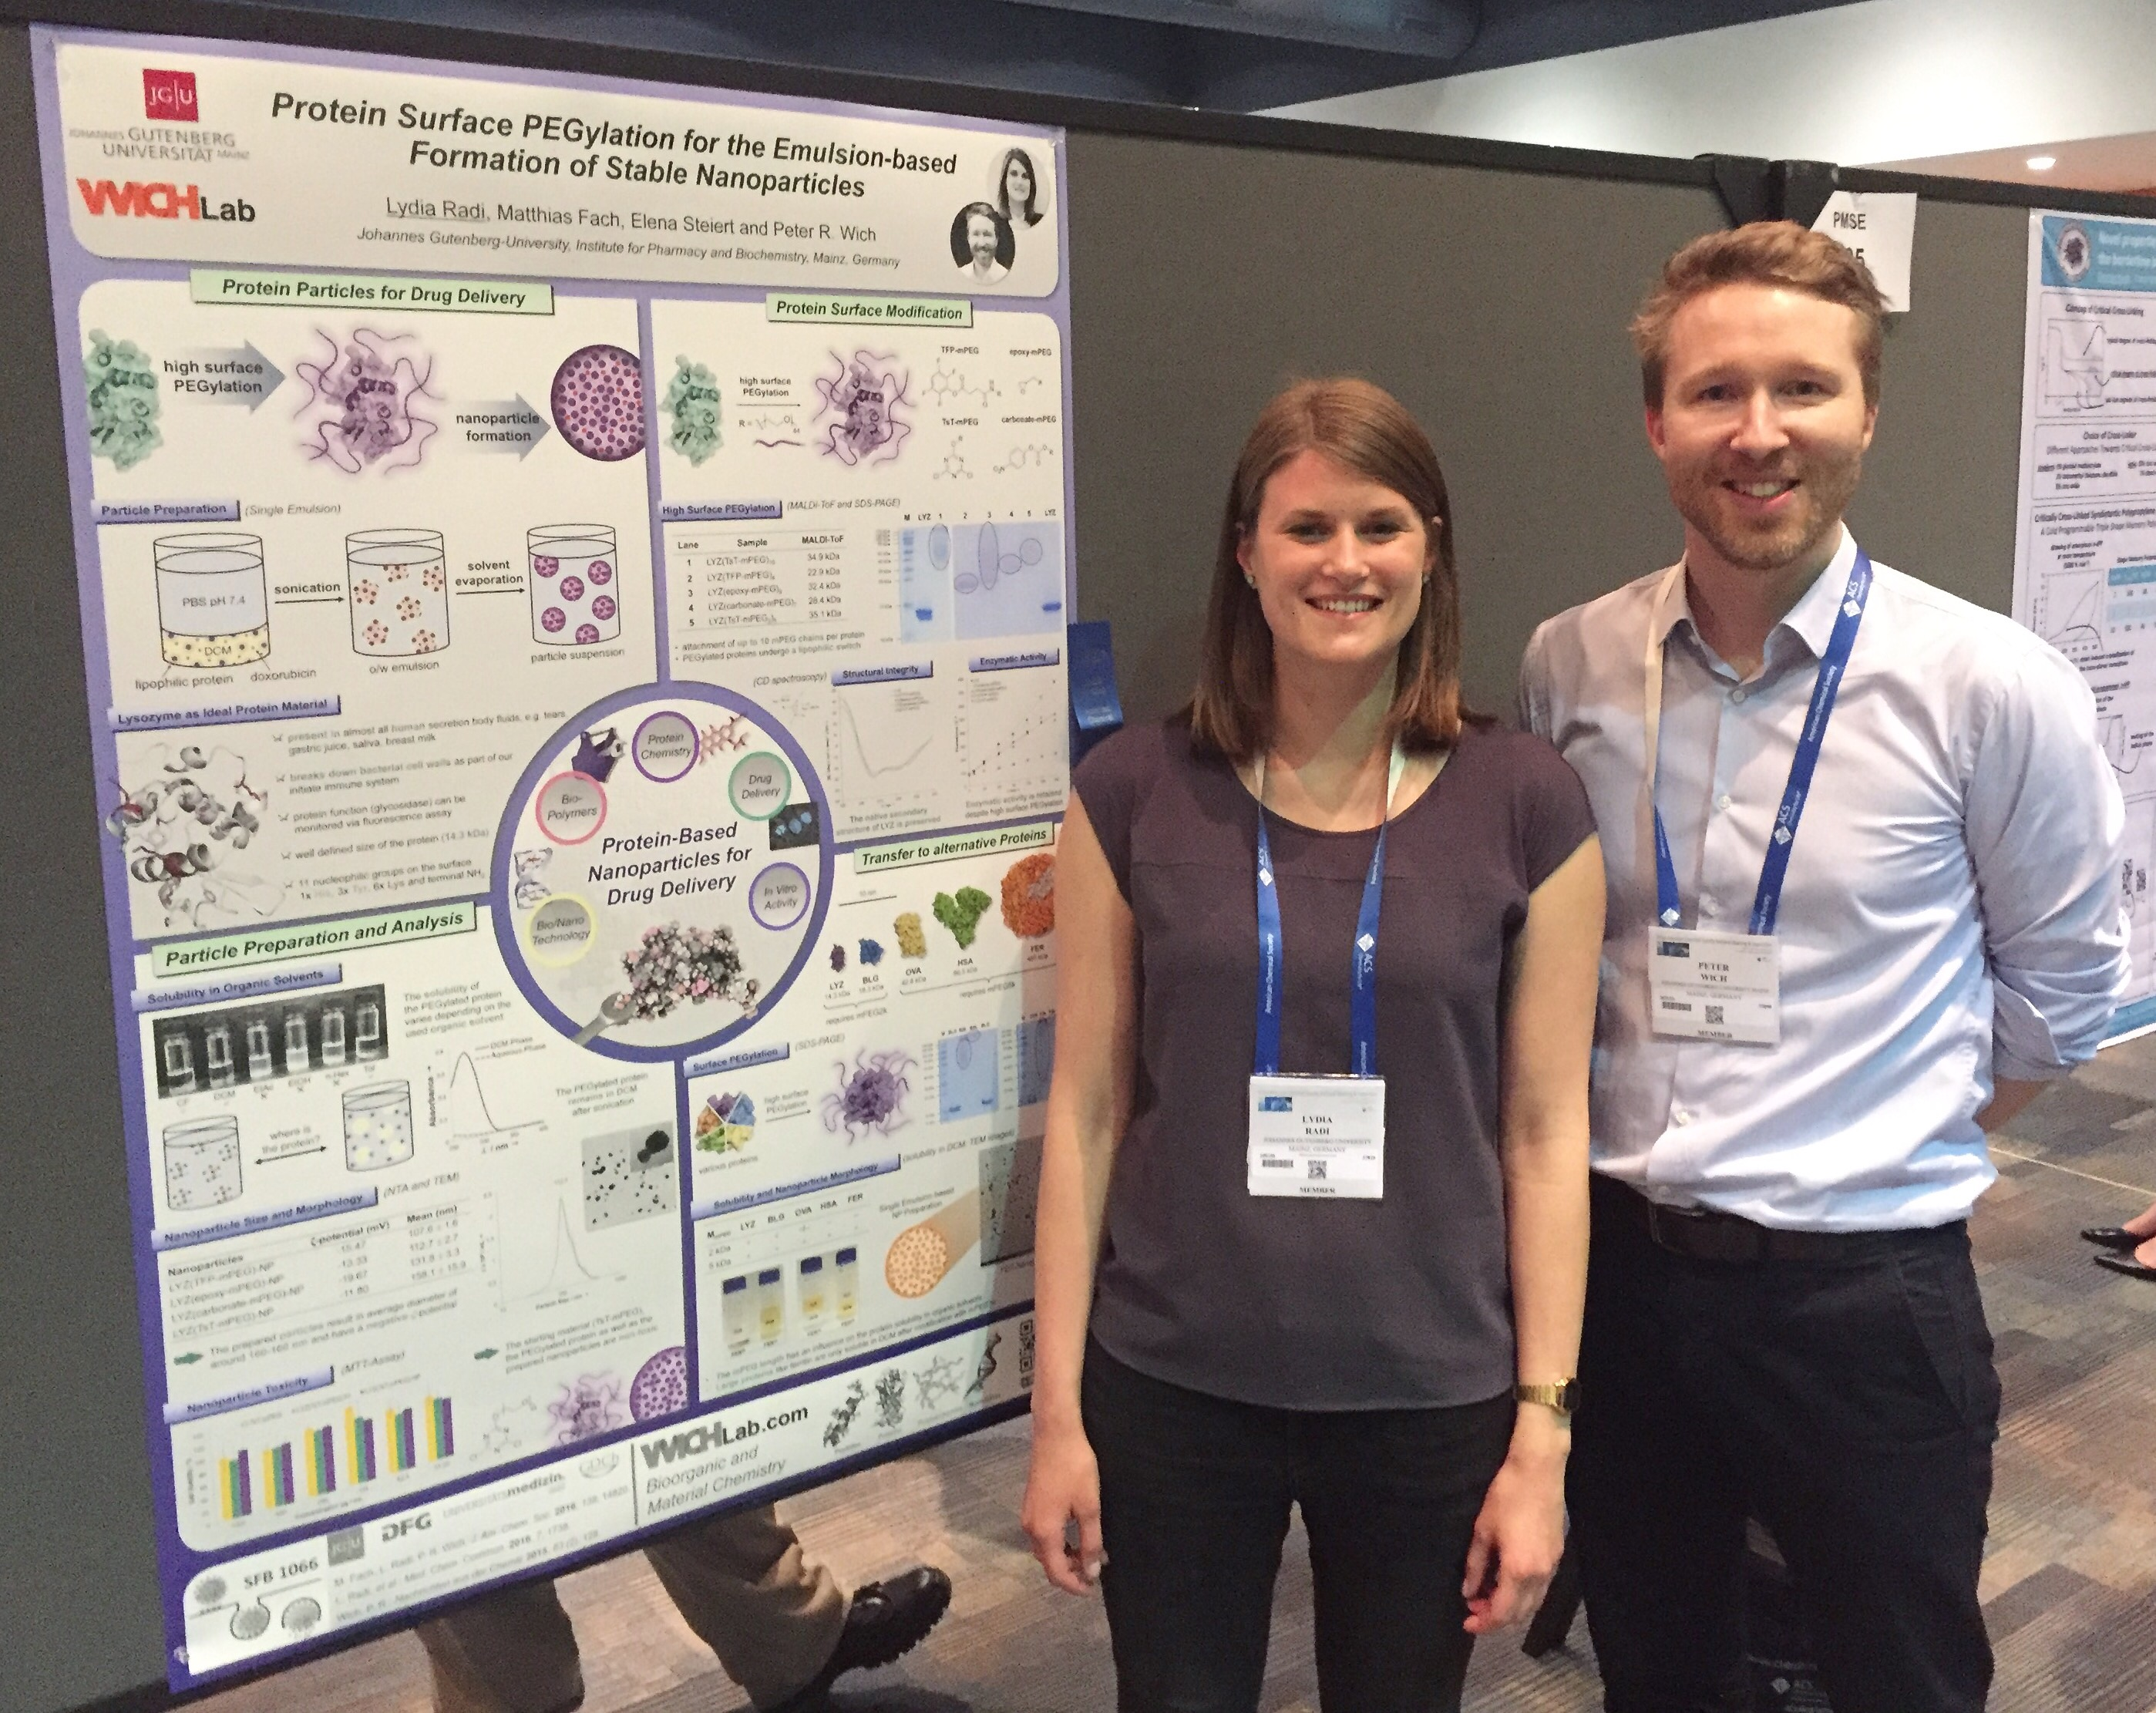 Lydia poster ACSSanFran chemistry nanoparticles acspmse ACS conference